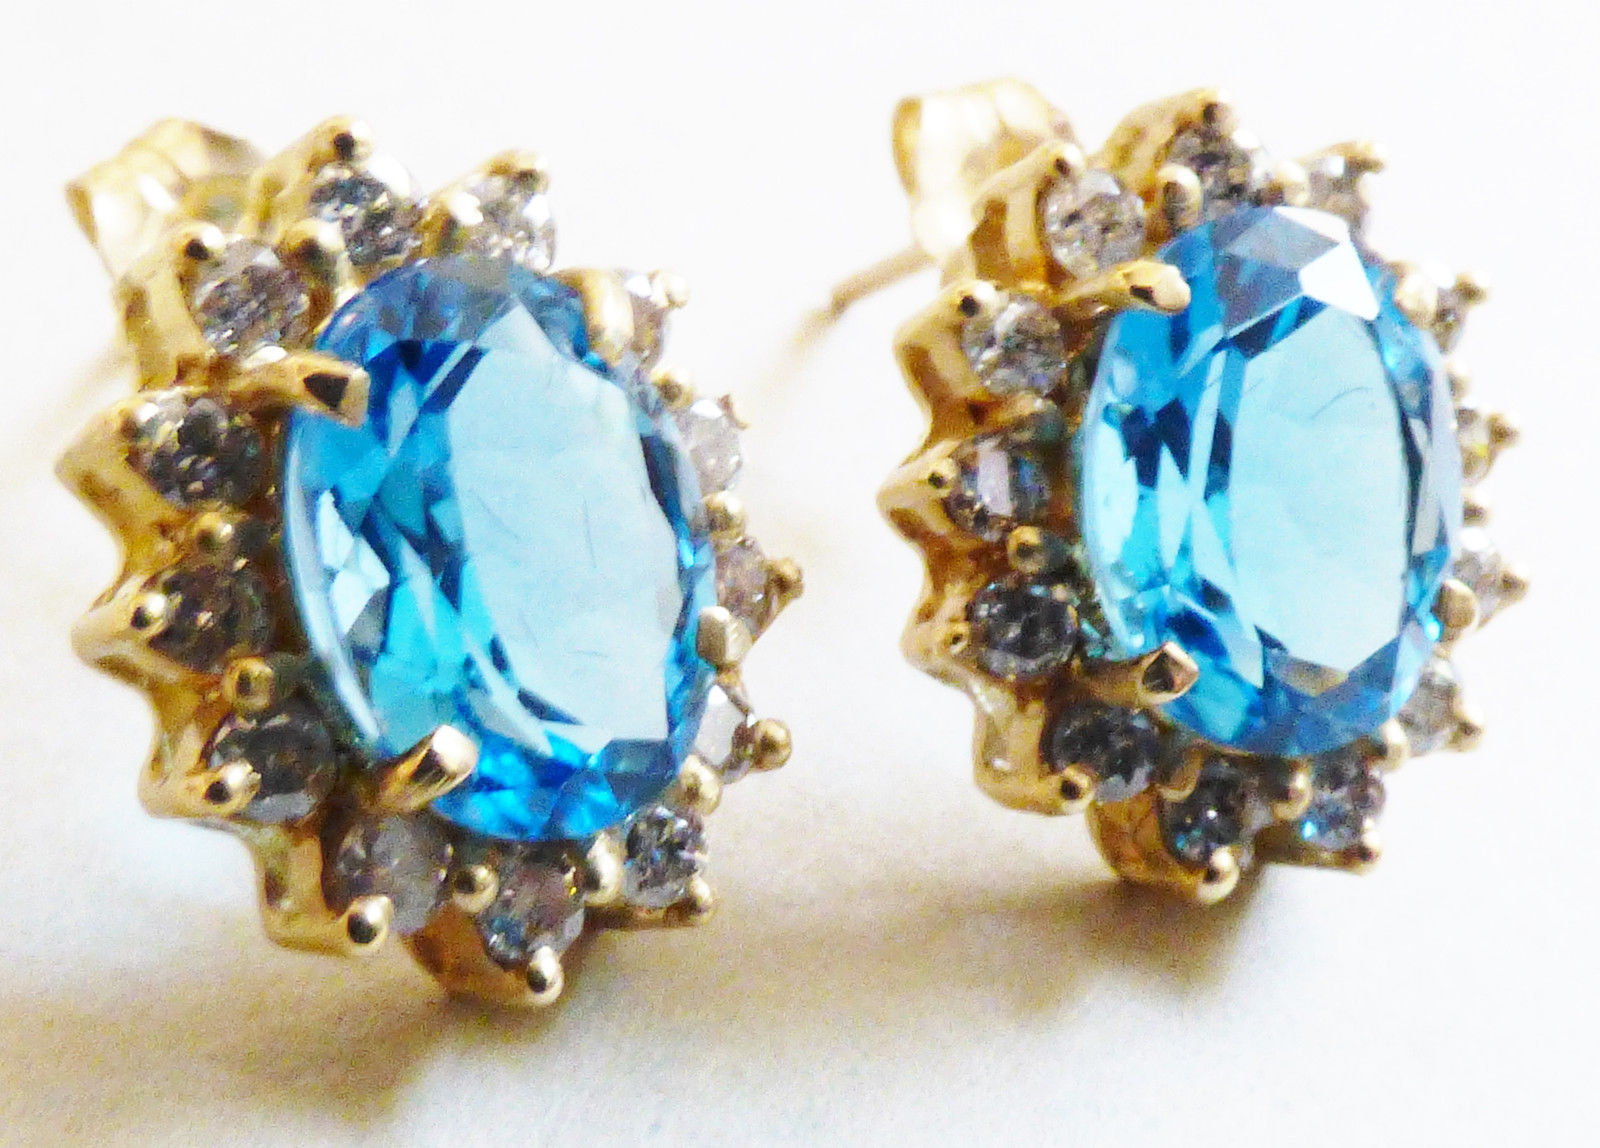 14kt Yellow Gold .78 CTTW Oval Blue Topaz & Round Diamonds Stud Earrings